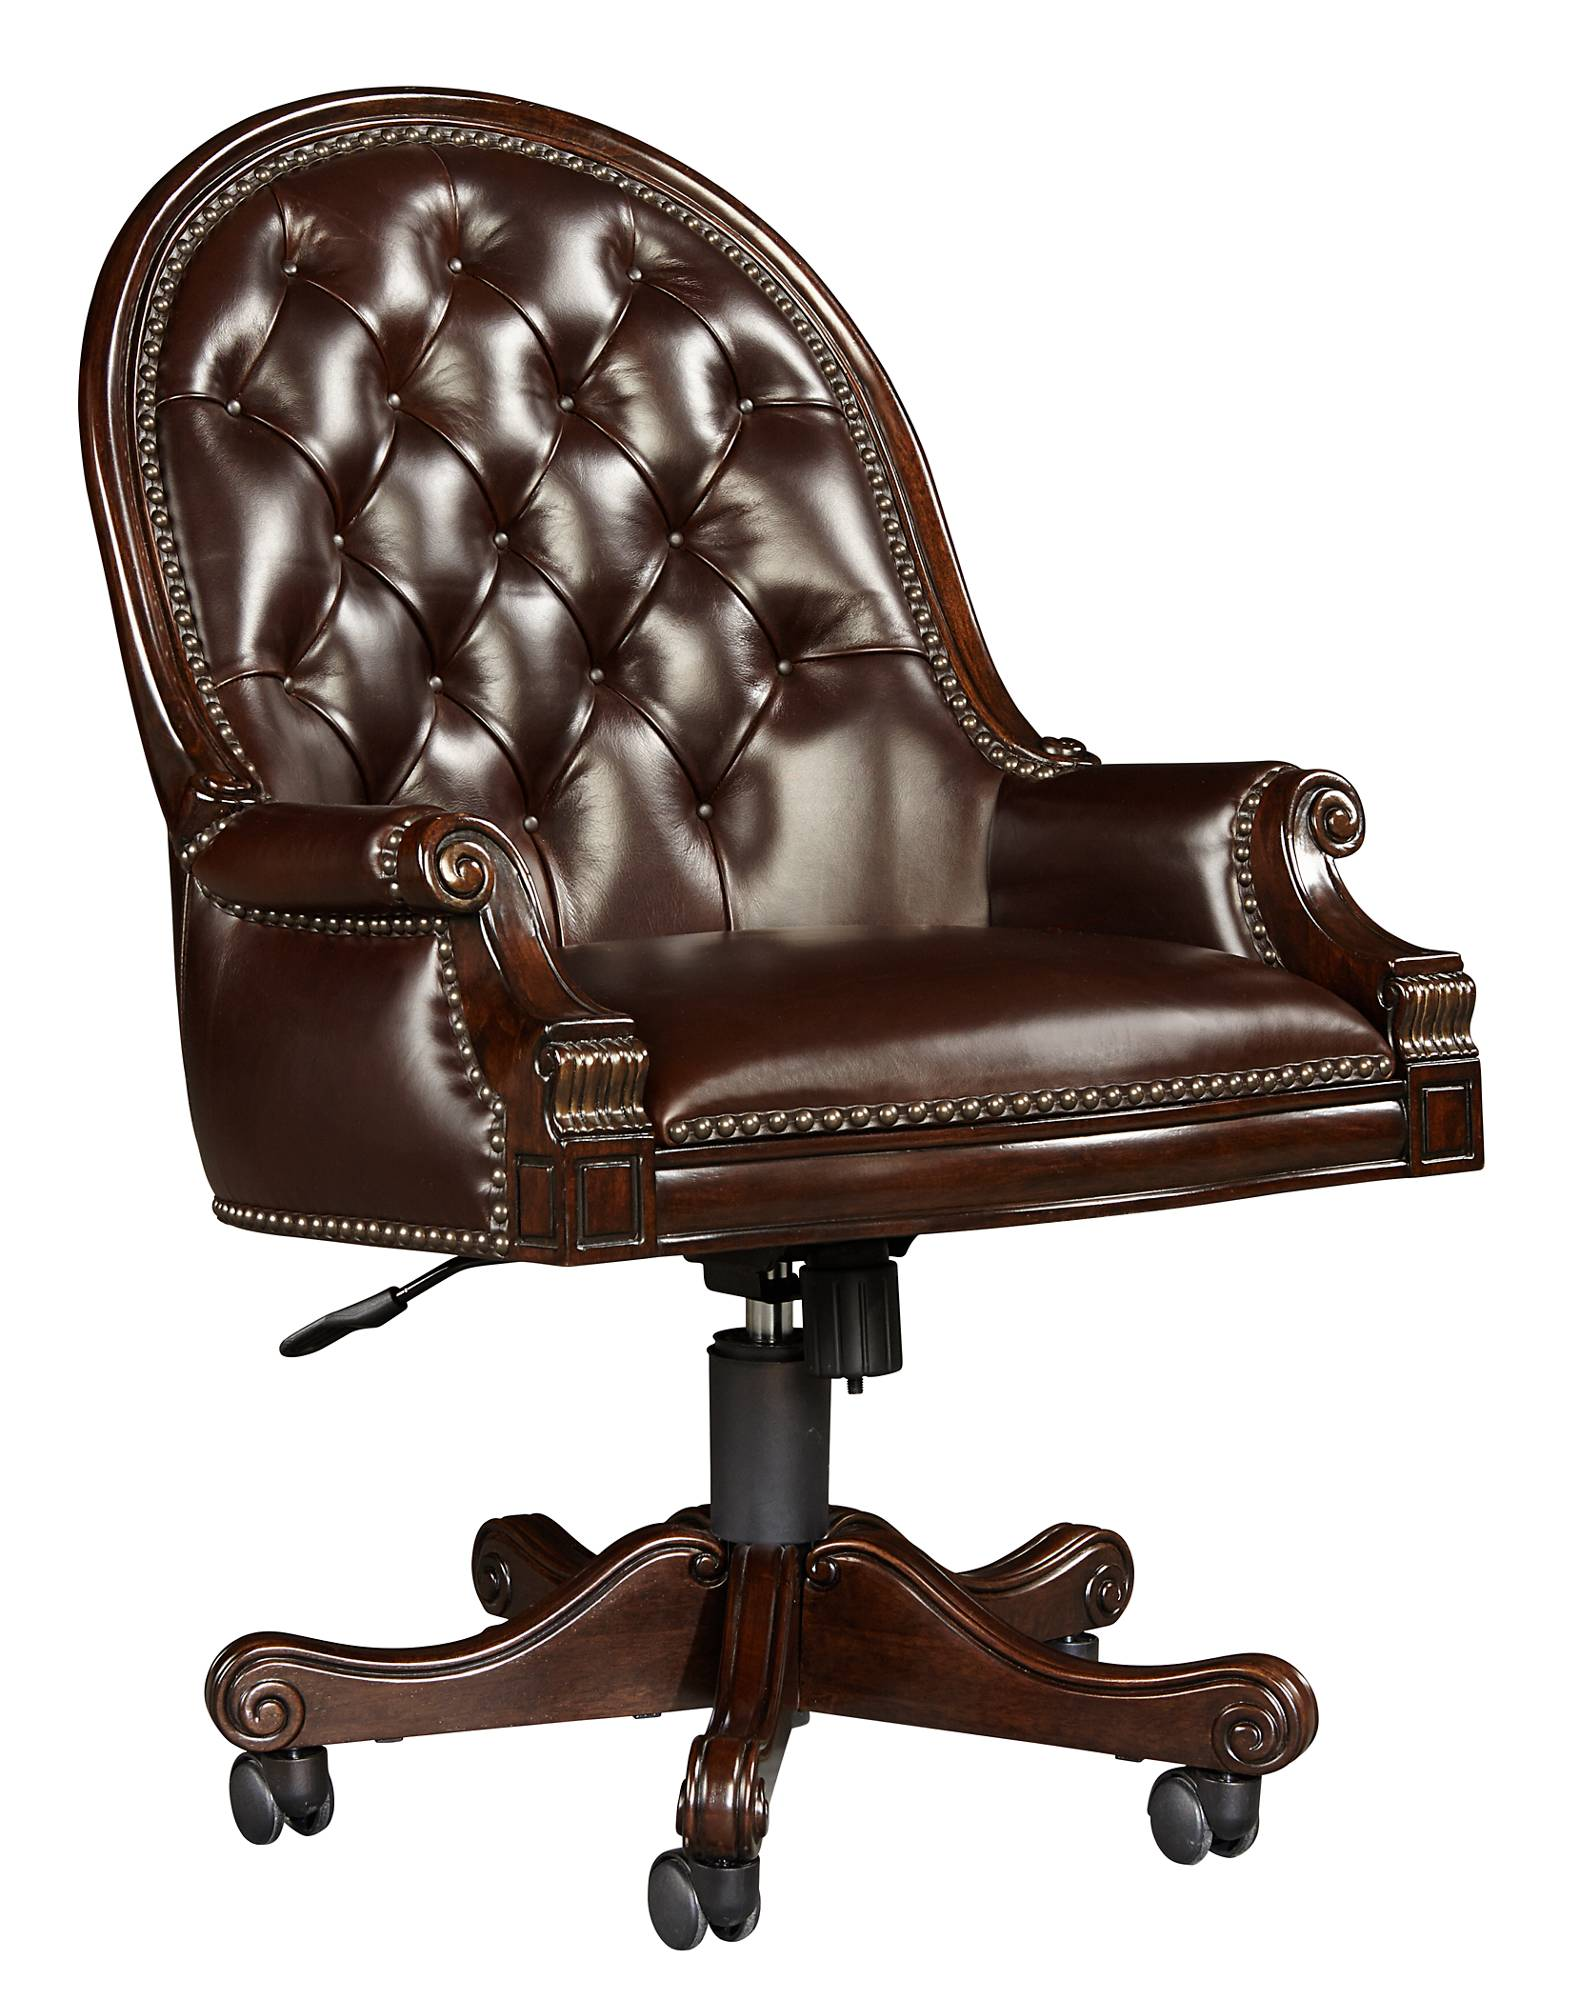 Stanley Furniture Casa D'Onore Executive Desk Chair - Item Number: 443-15-75